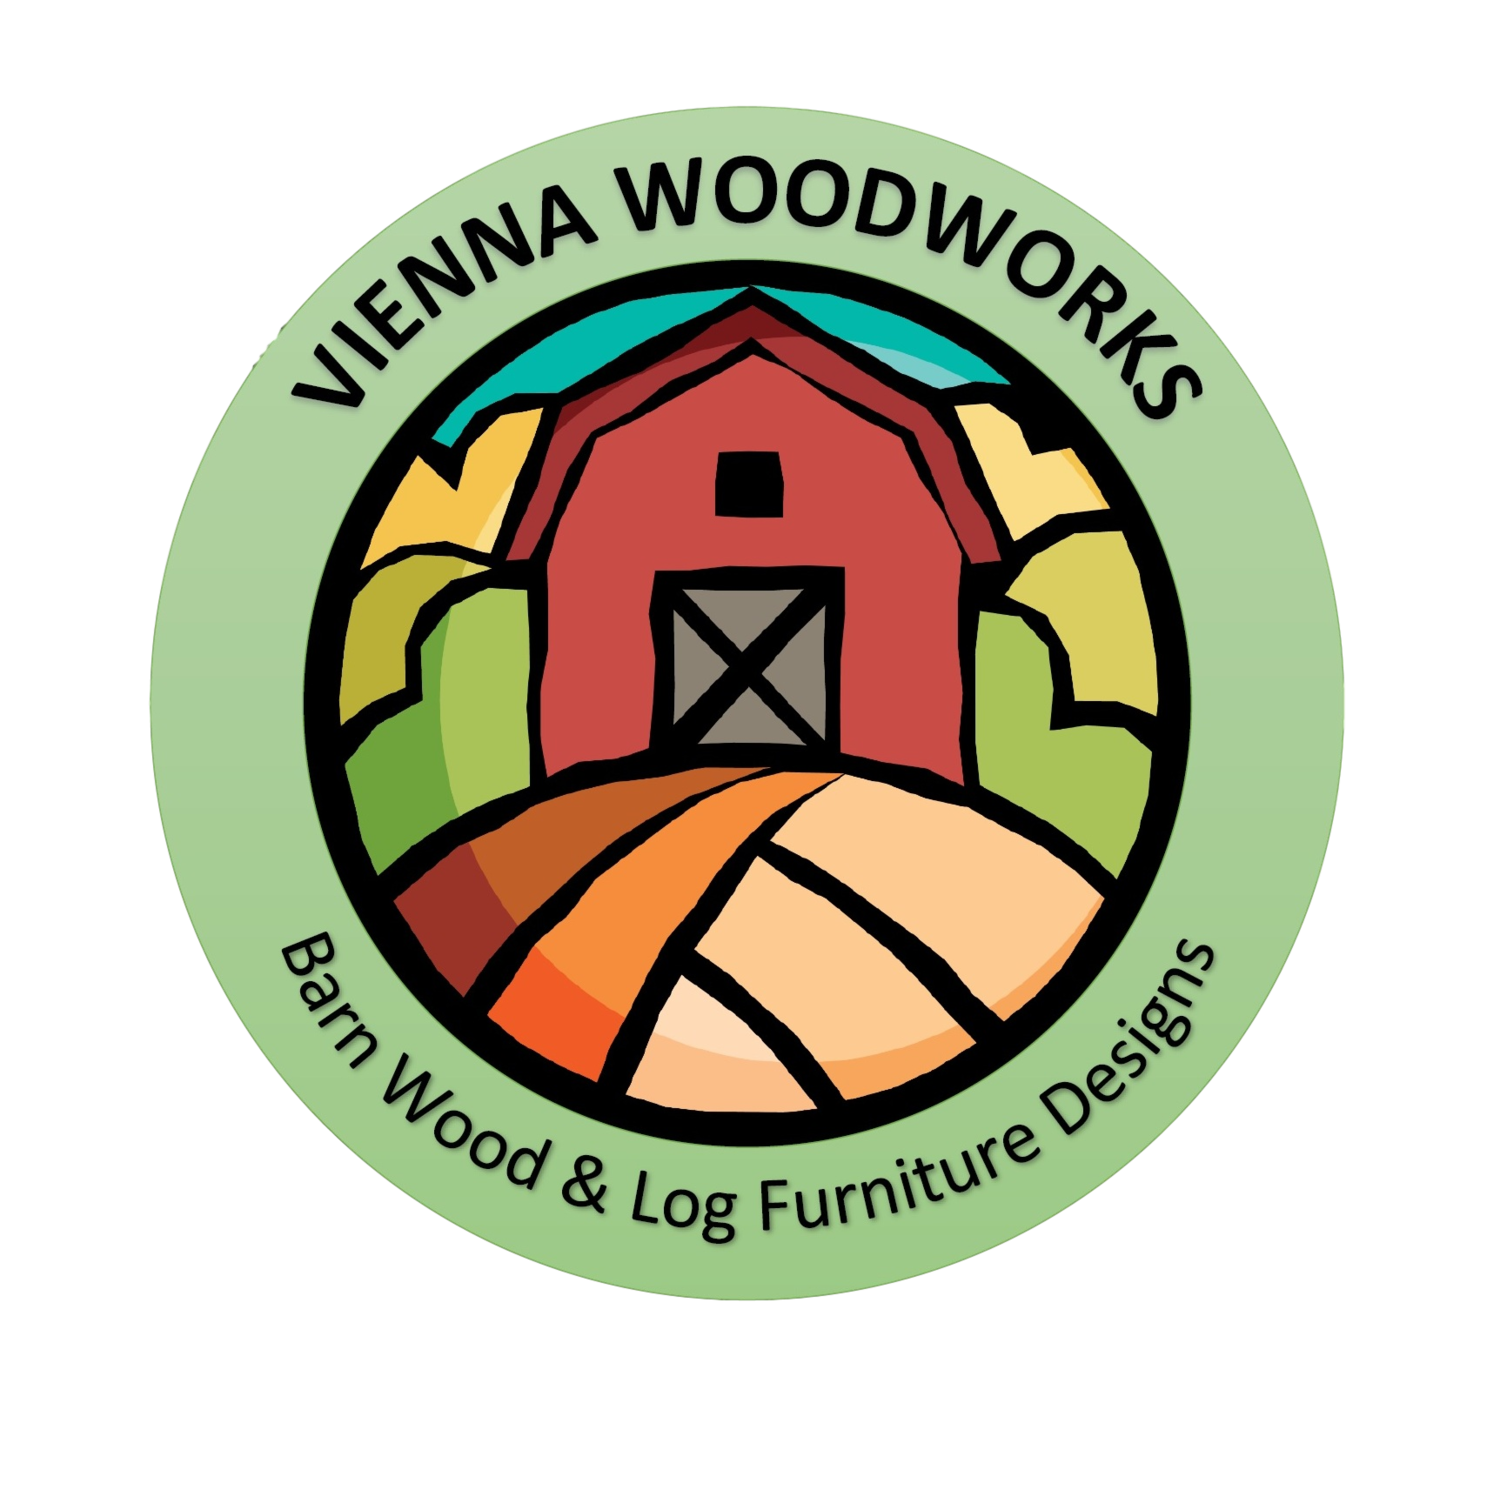 Barn Wood Furniture - Rustic Barnwood and Log Furniture By Vienna Woodworks